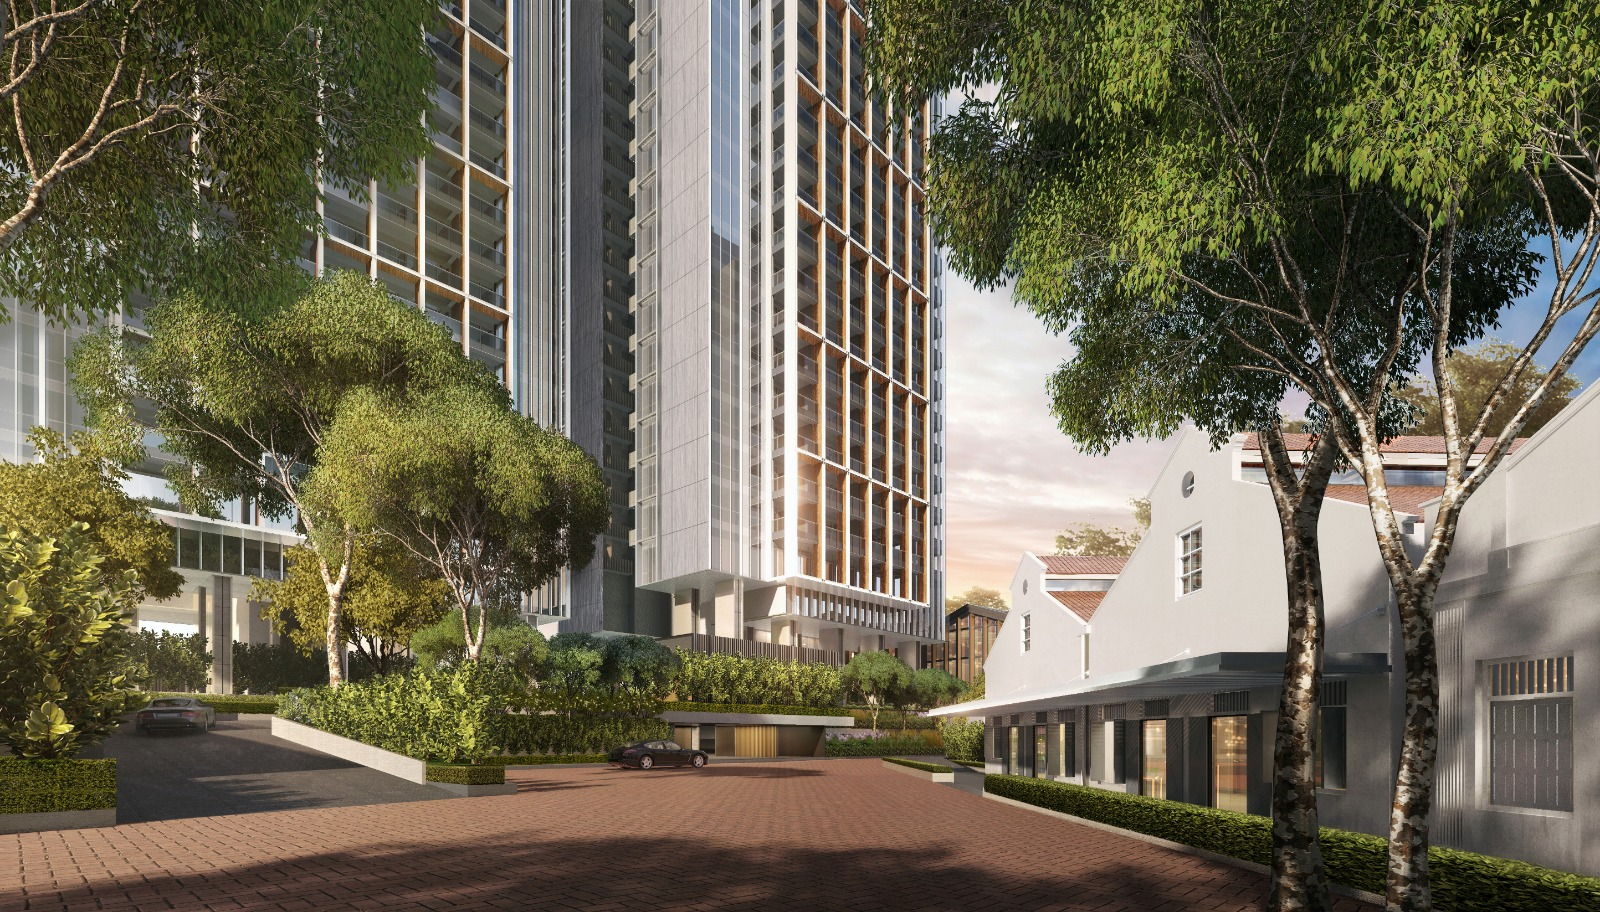 1_Riviere-exterior-view-1